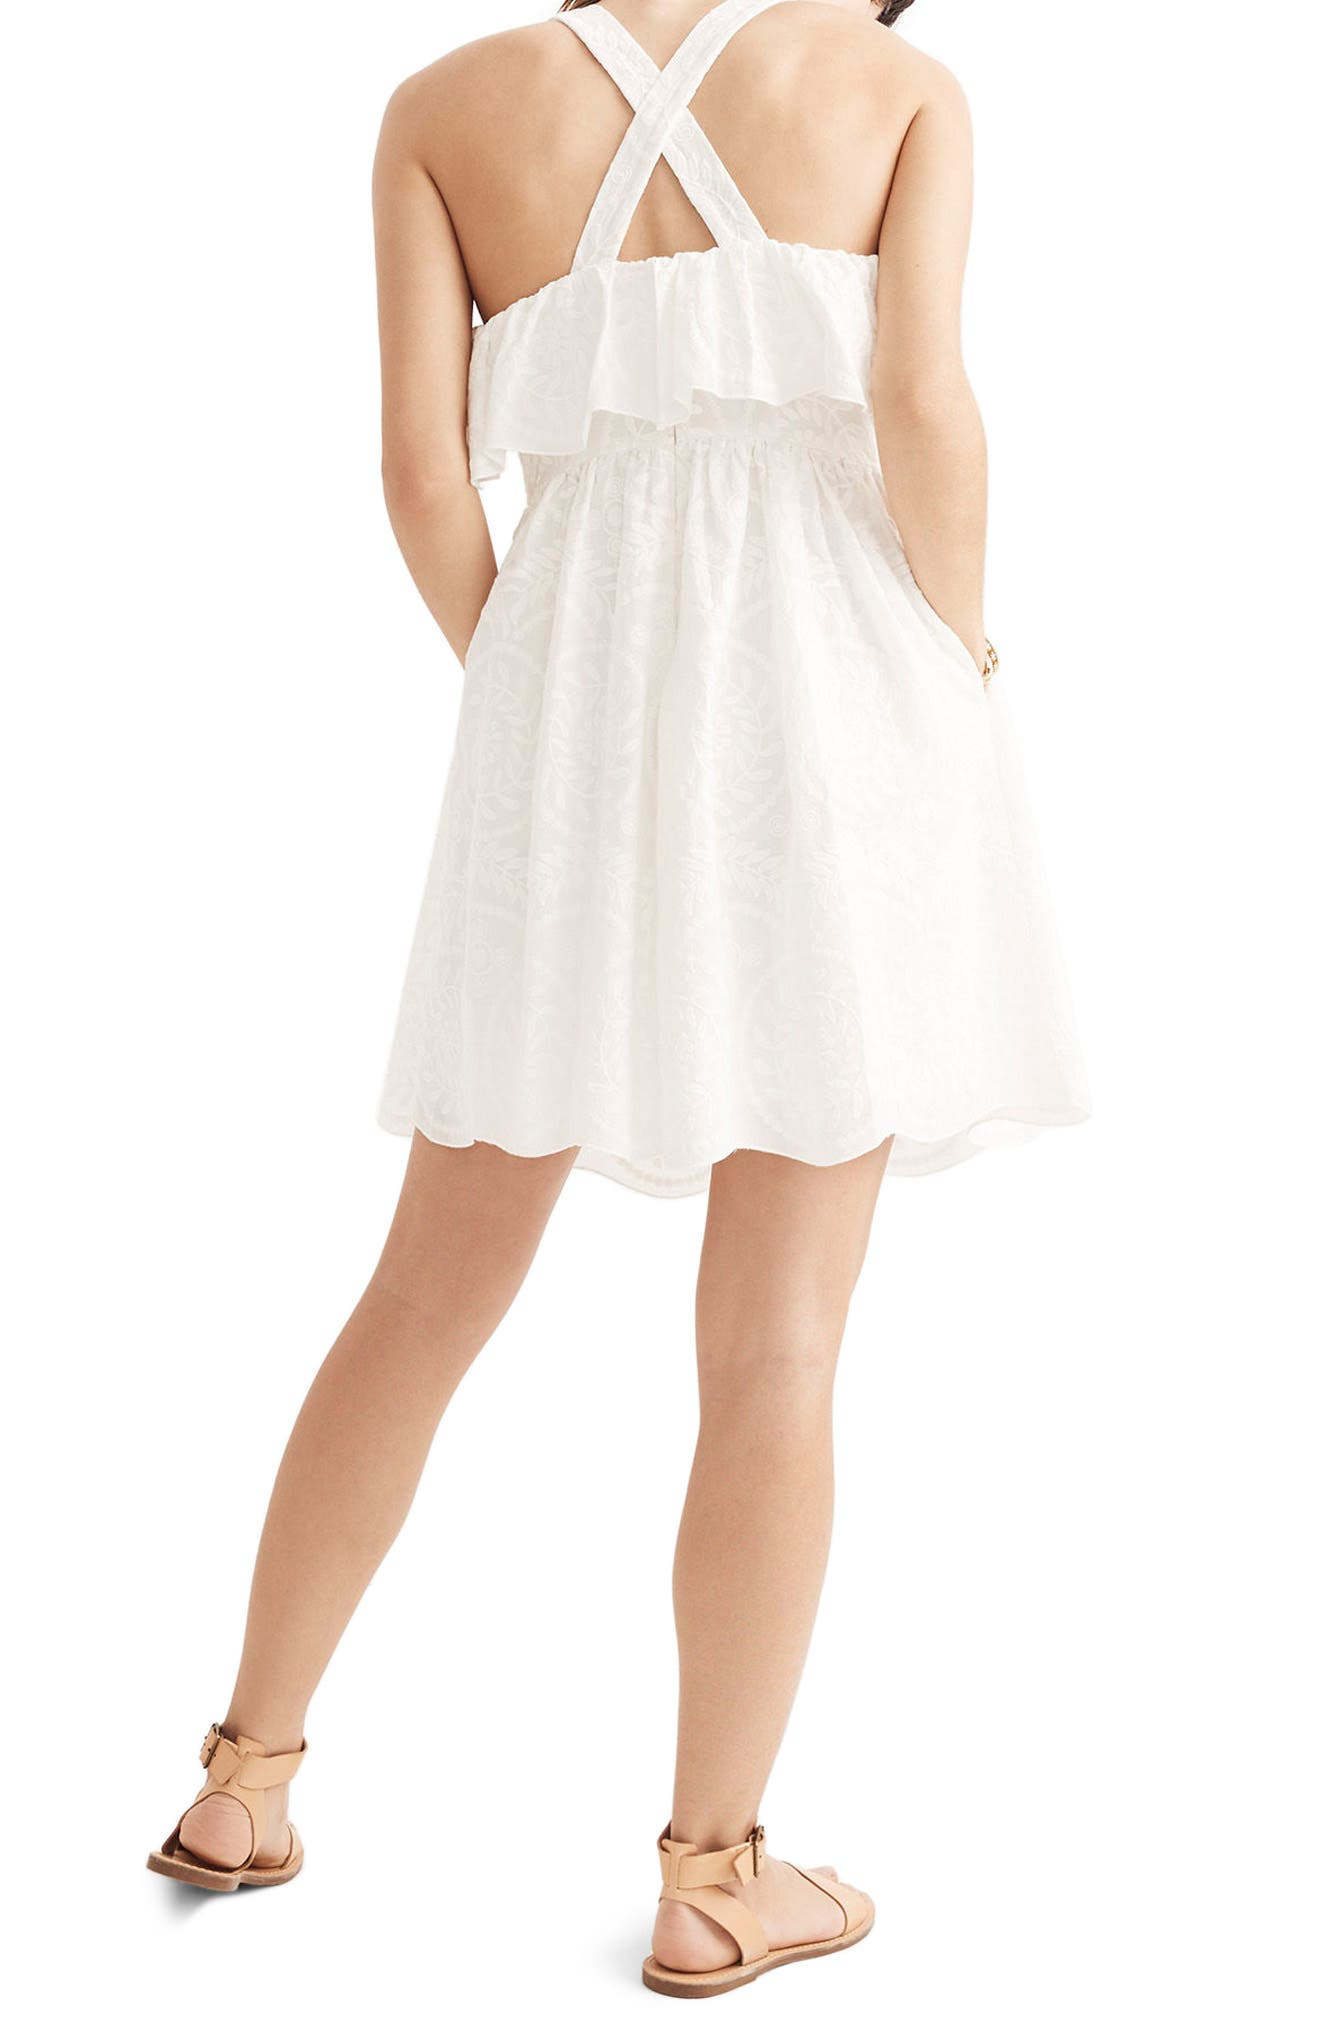 Embroidered Apron Ruffle Dress,                             Alternate thumbnail 2, color,                             100